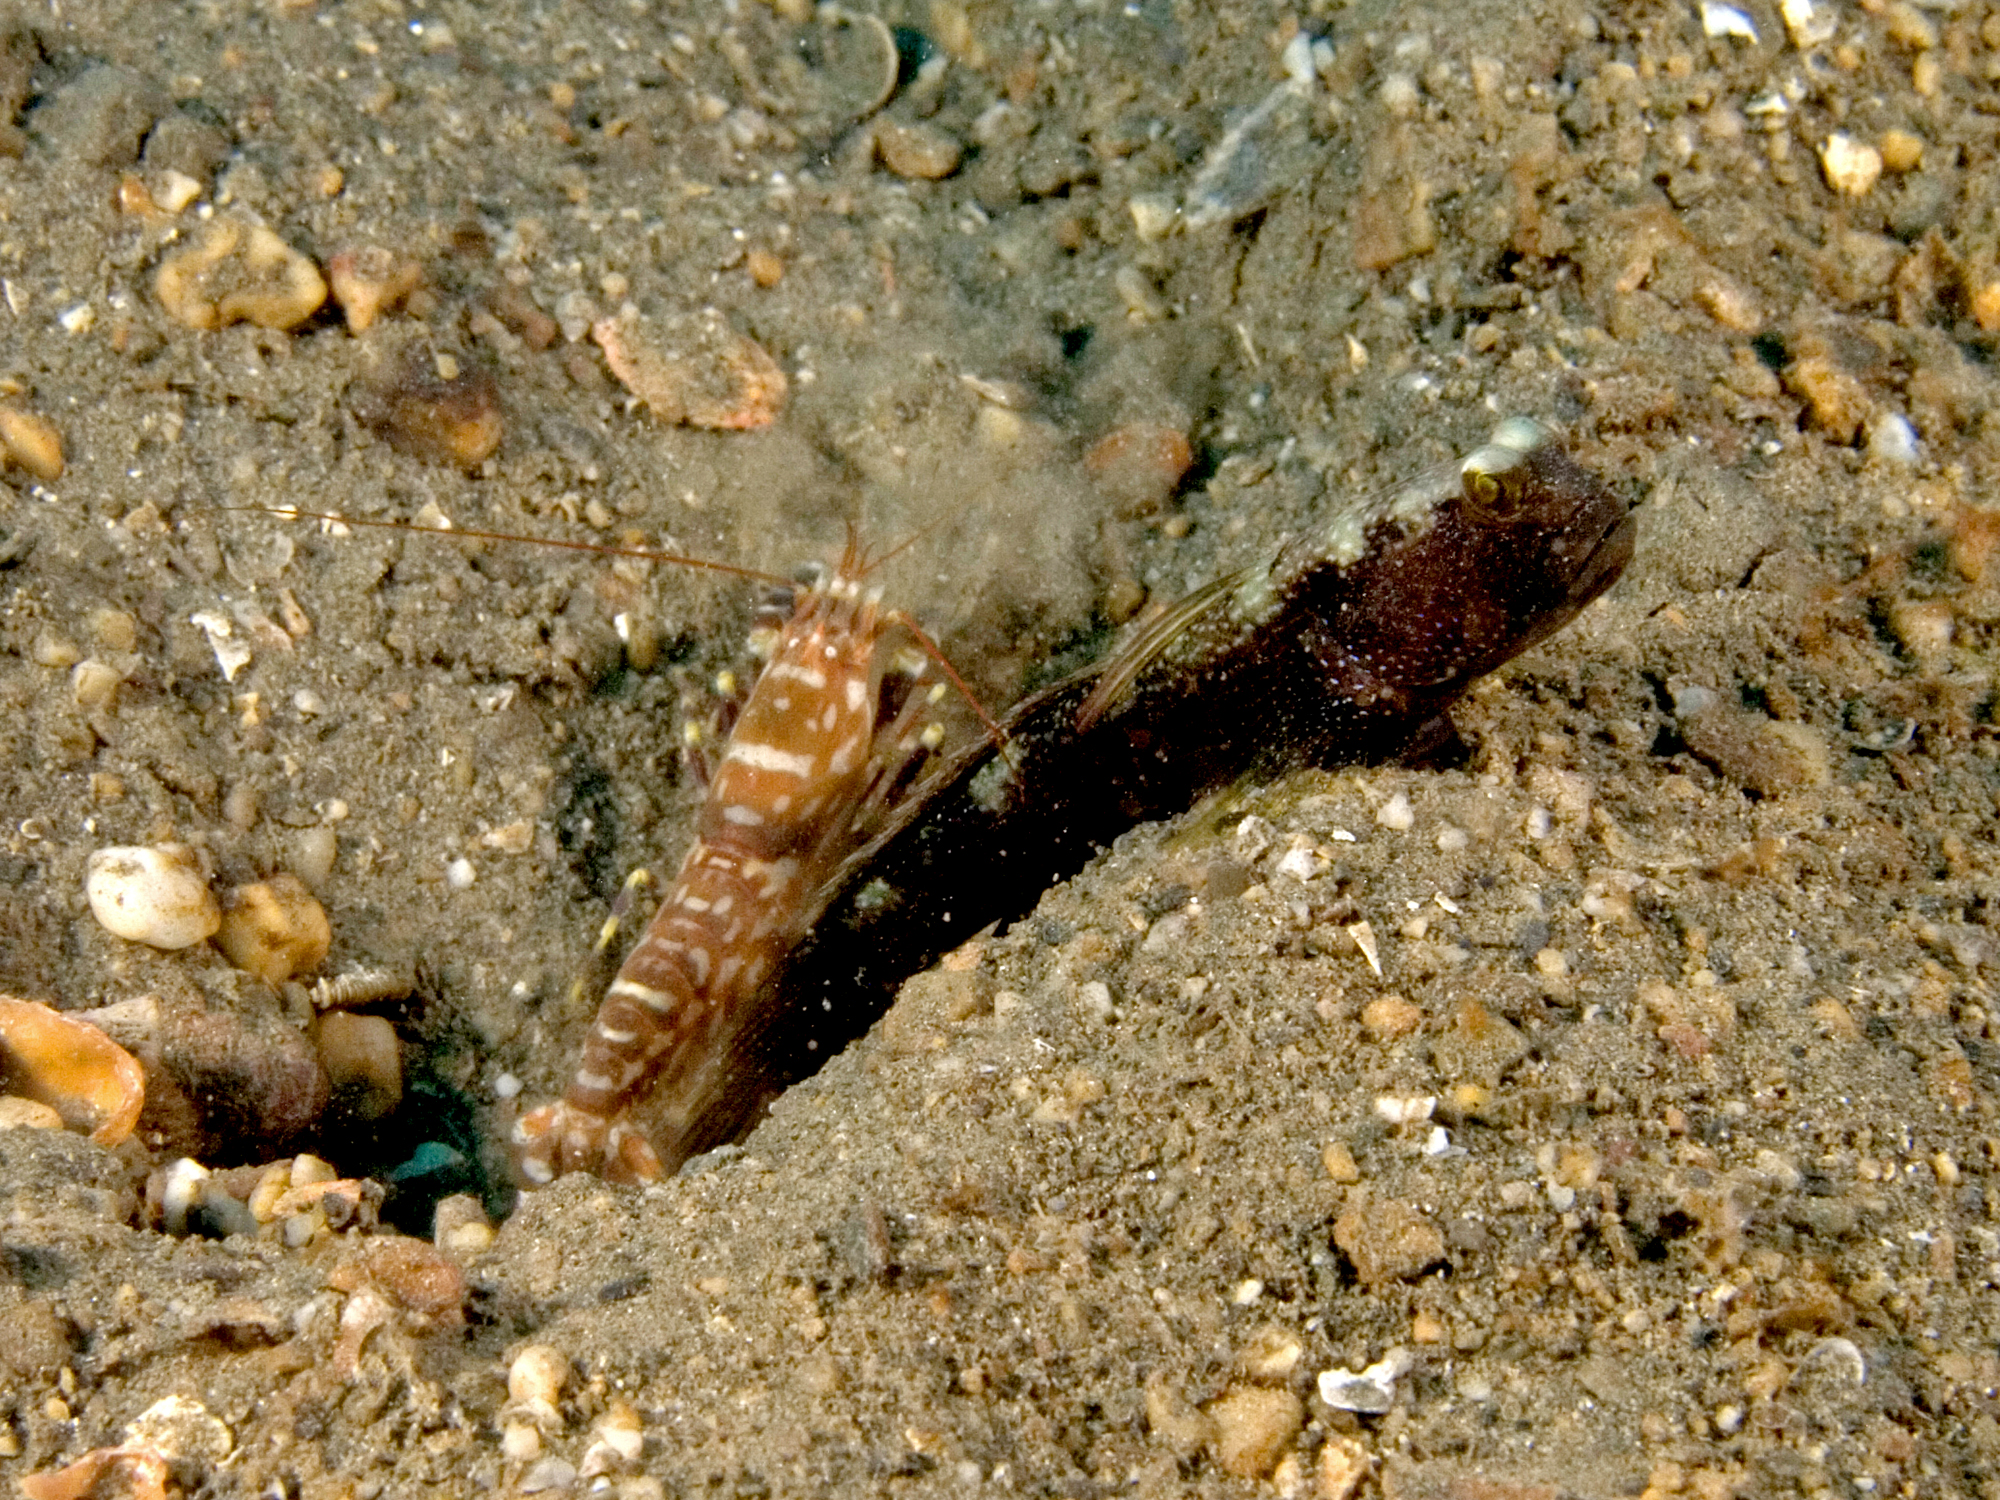 Cryptocentrus strigilliceps (Target shrimpgoby) and Alpheus rapicida (Snapping shrimp)